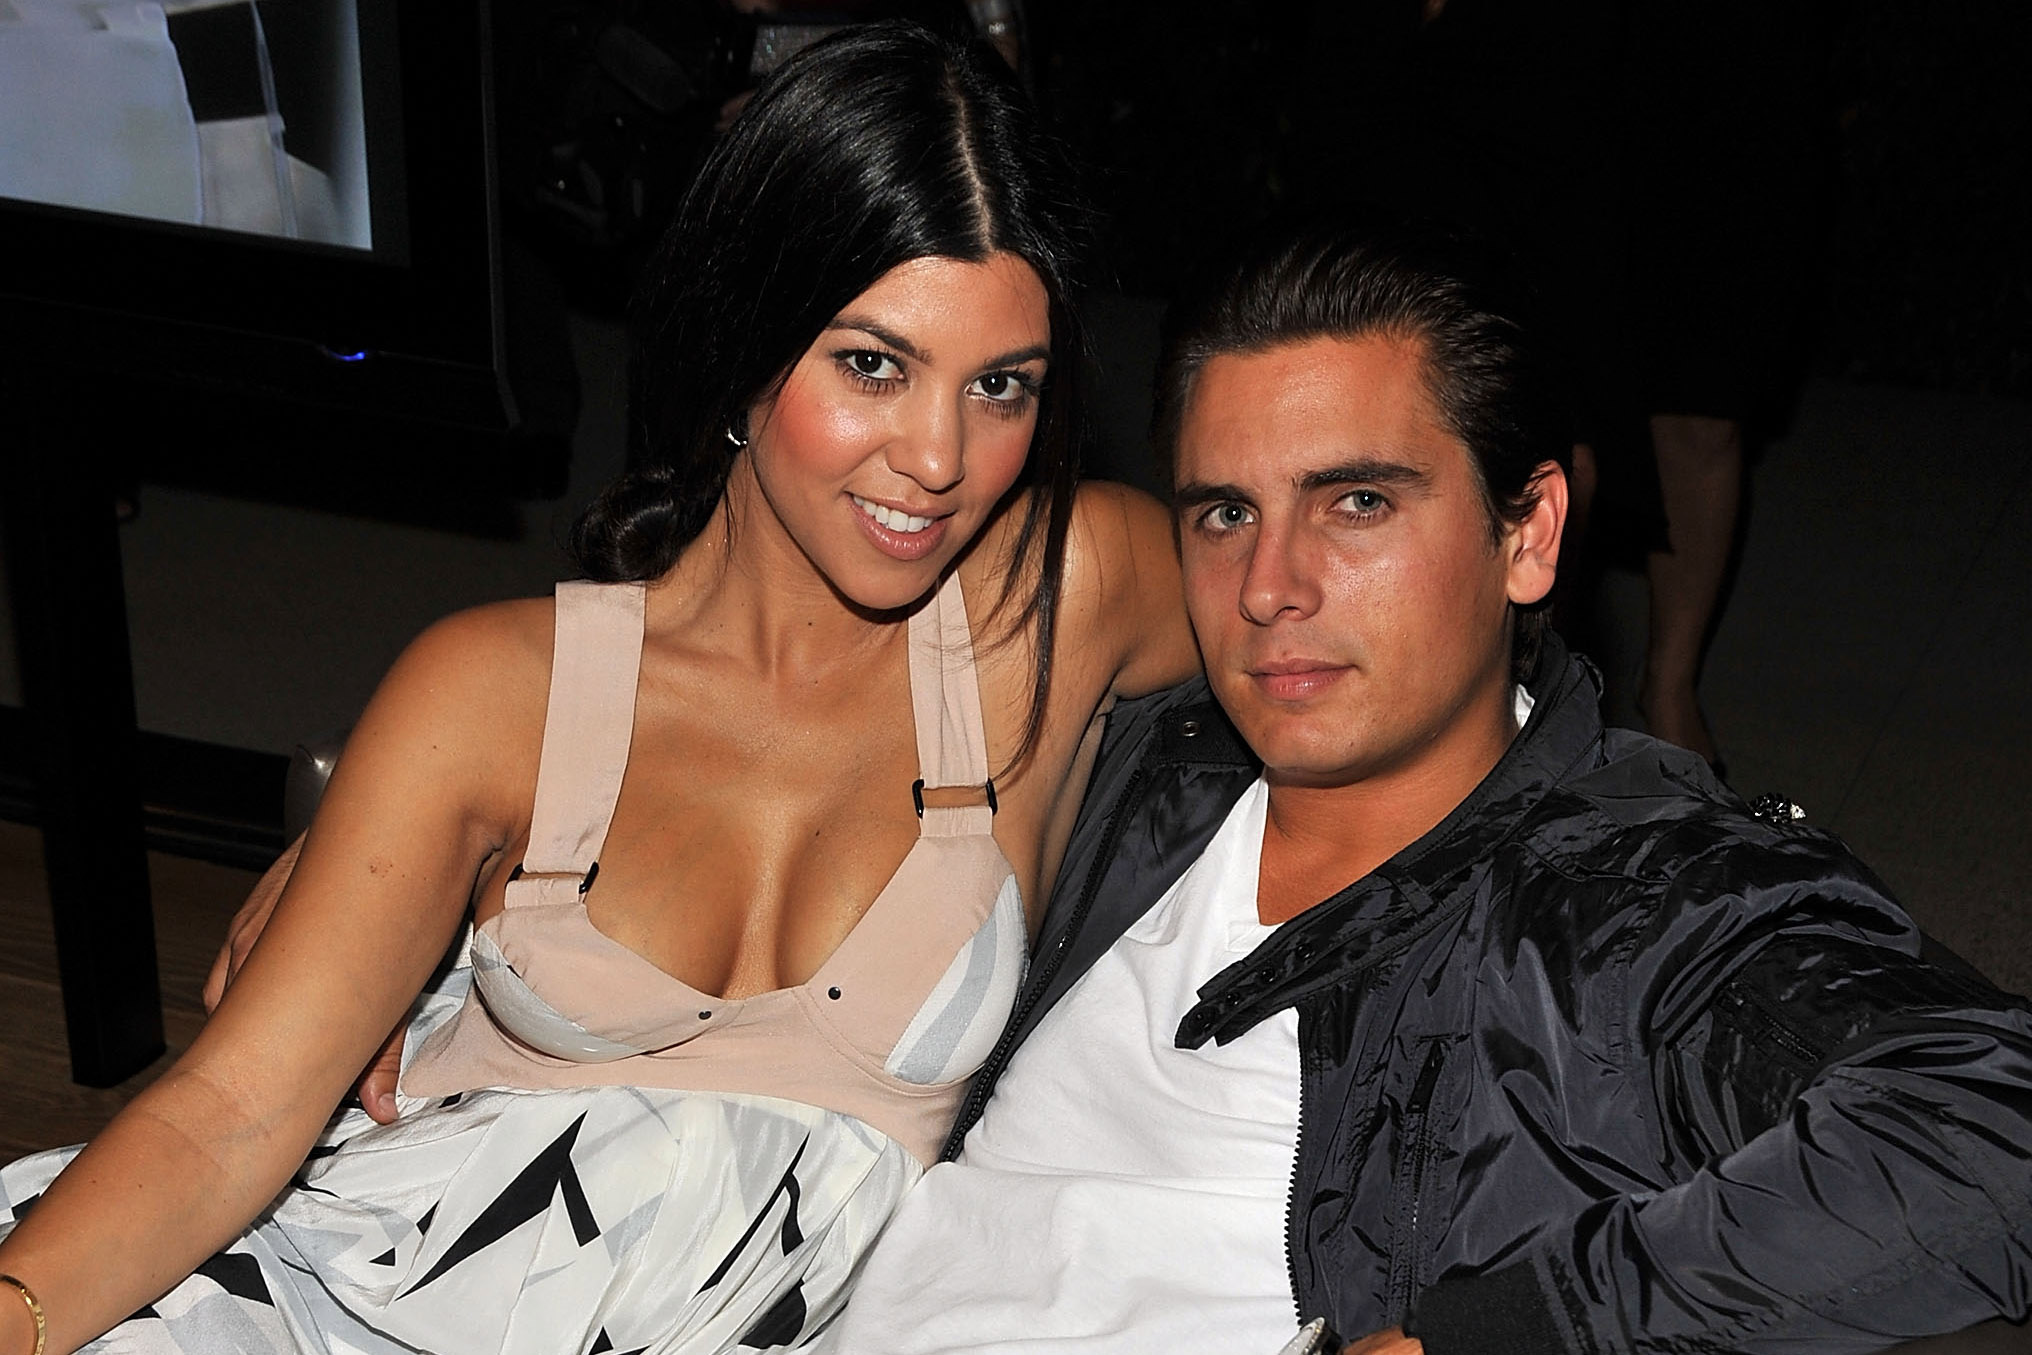 Seems good Scott disick and kourtney kardashian opinion you